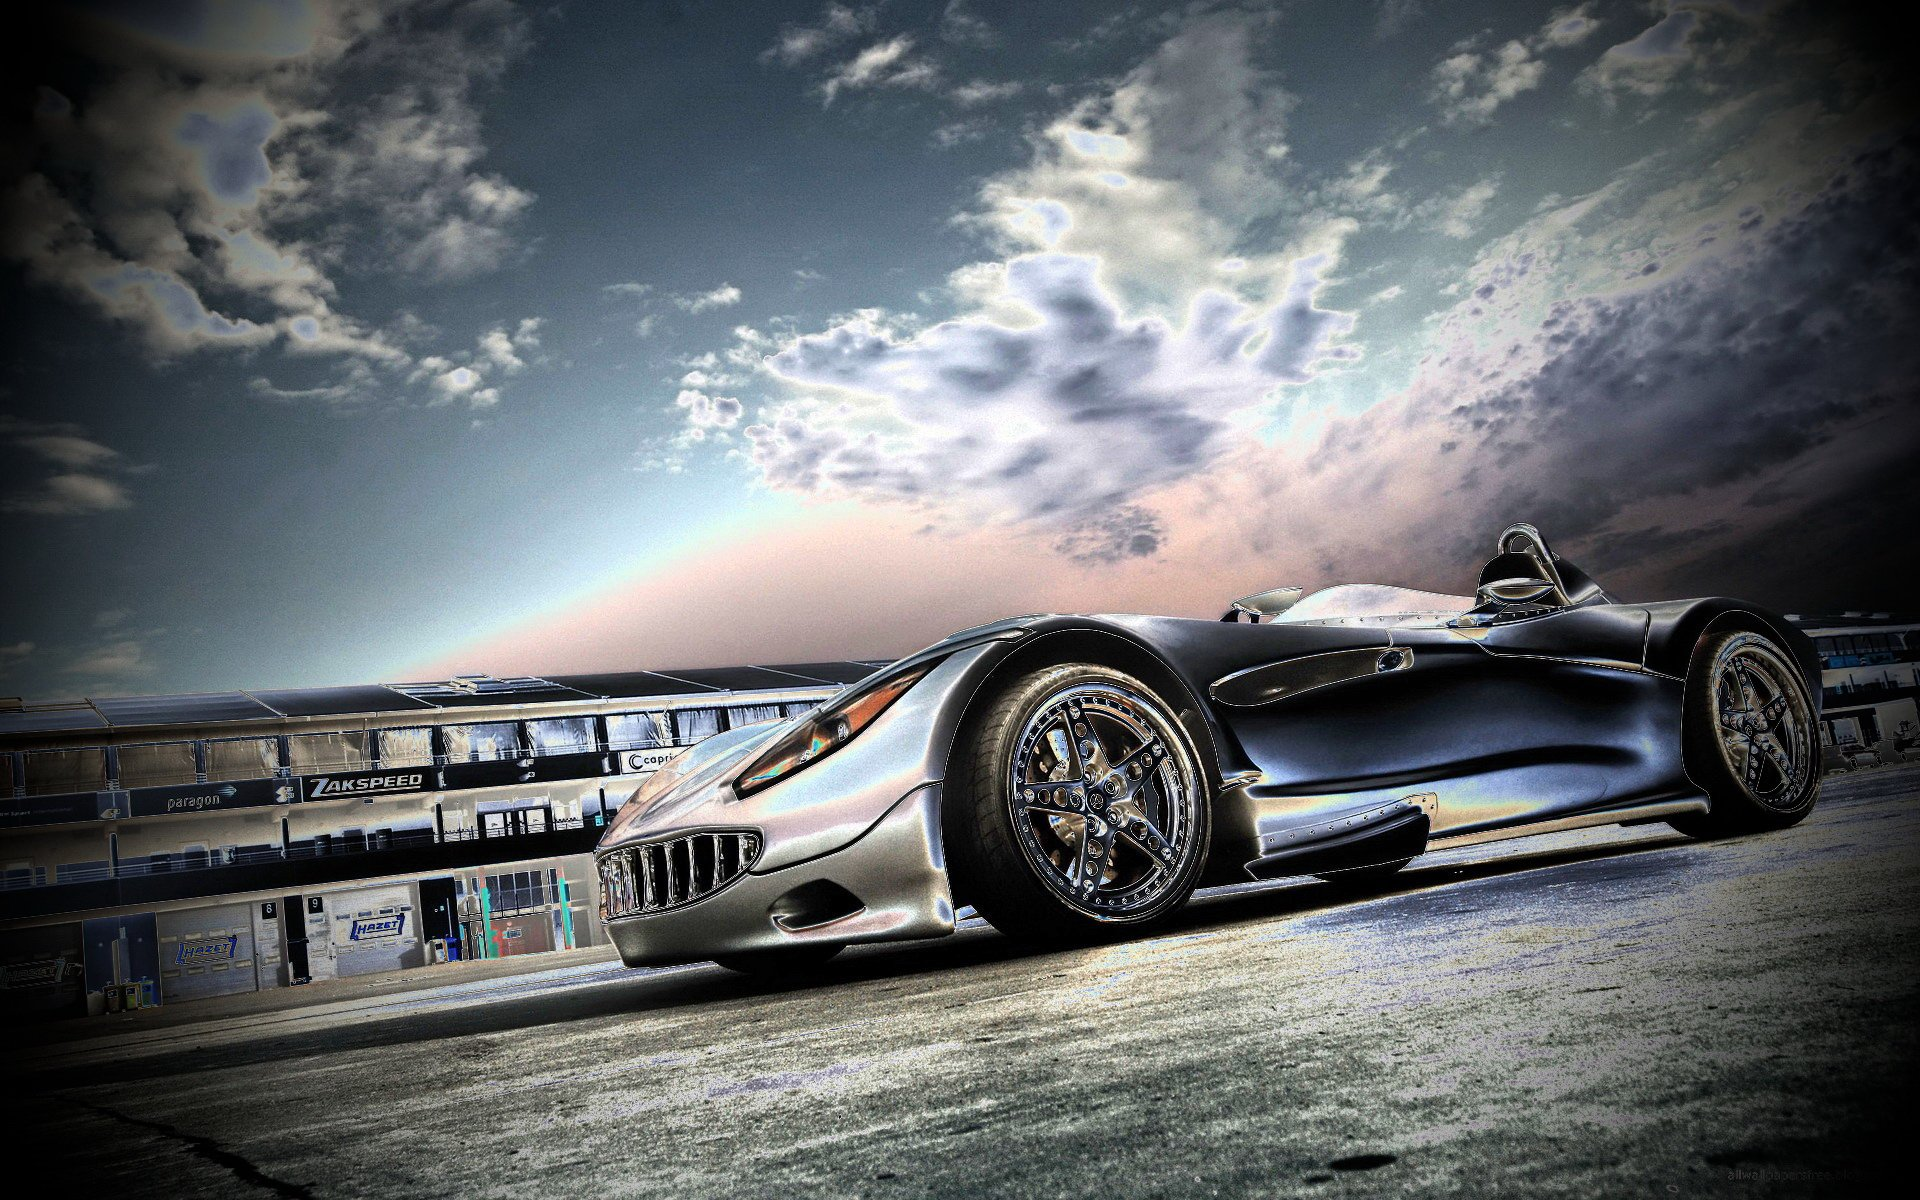 Racing Car Pictures Wallpaper - WallpaperSafari Race 2 Wallpapers Hd